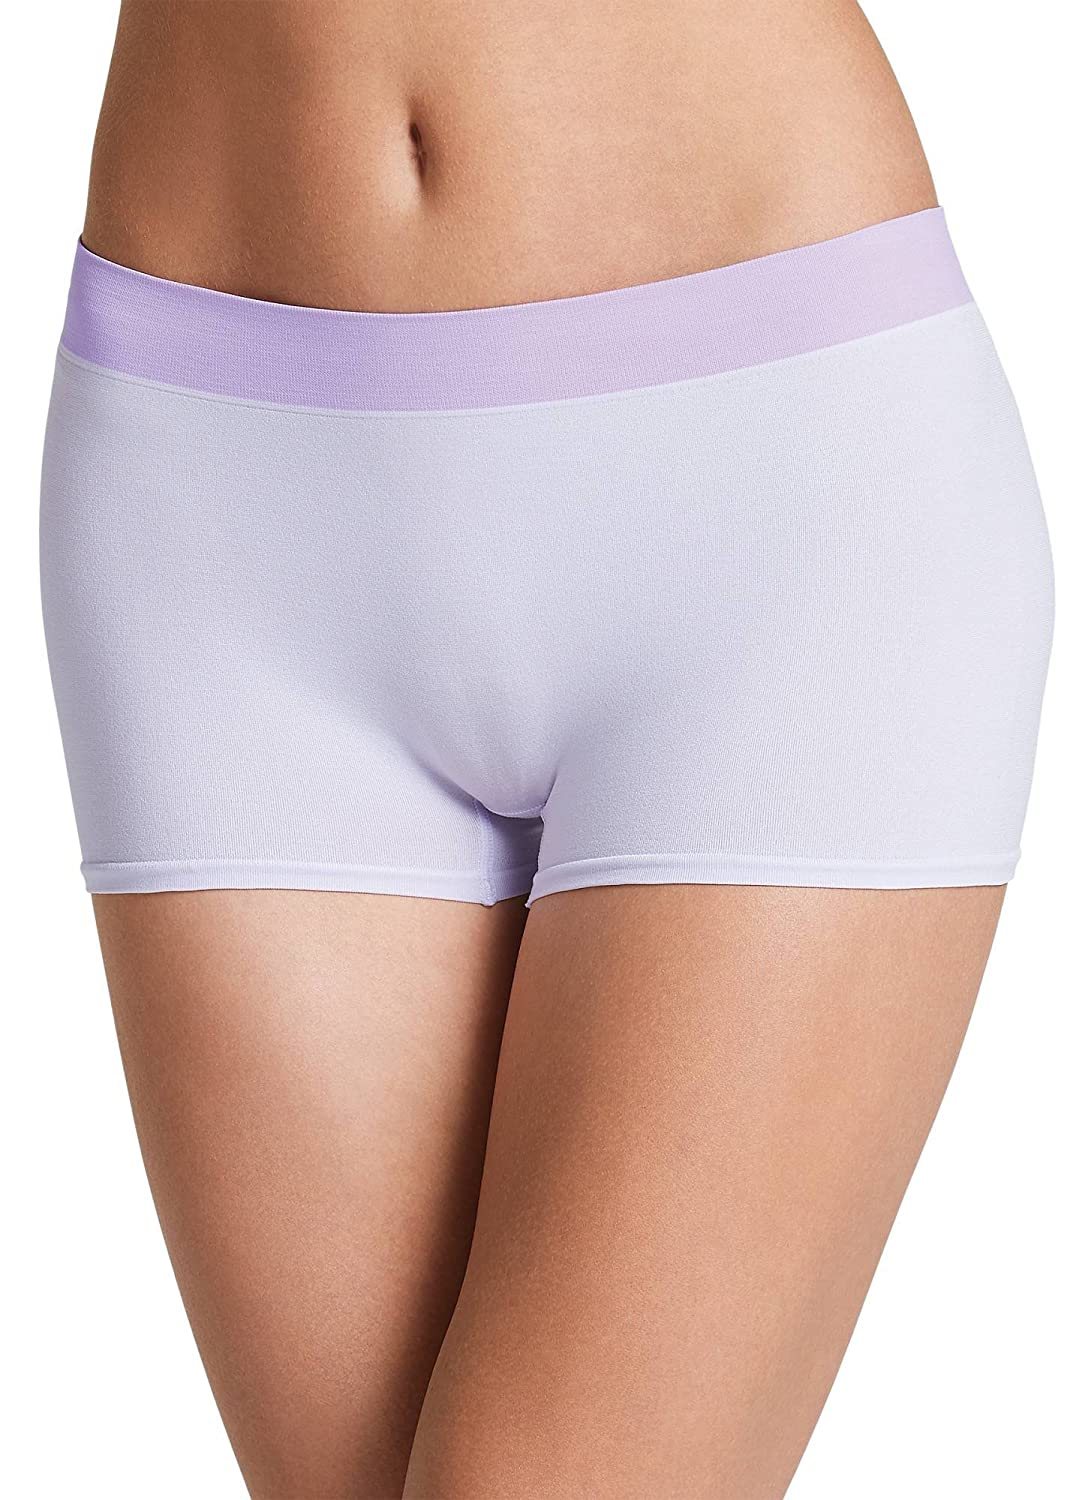 2b3cacefc Jockey Women's Underwear Modern Micro Boyshort: Amazon.ca: Clothing &  Accessories